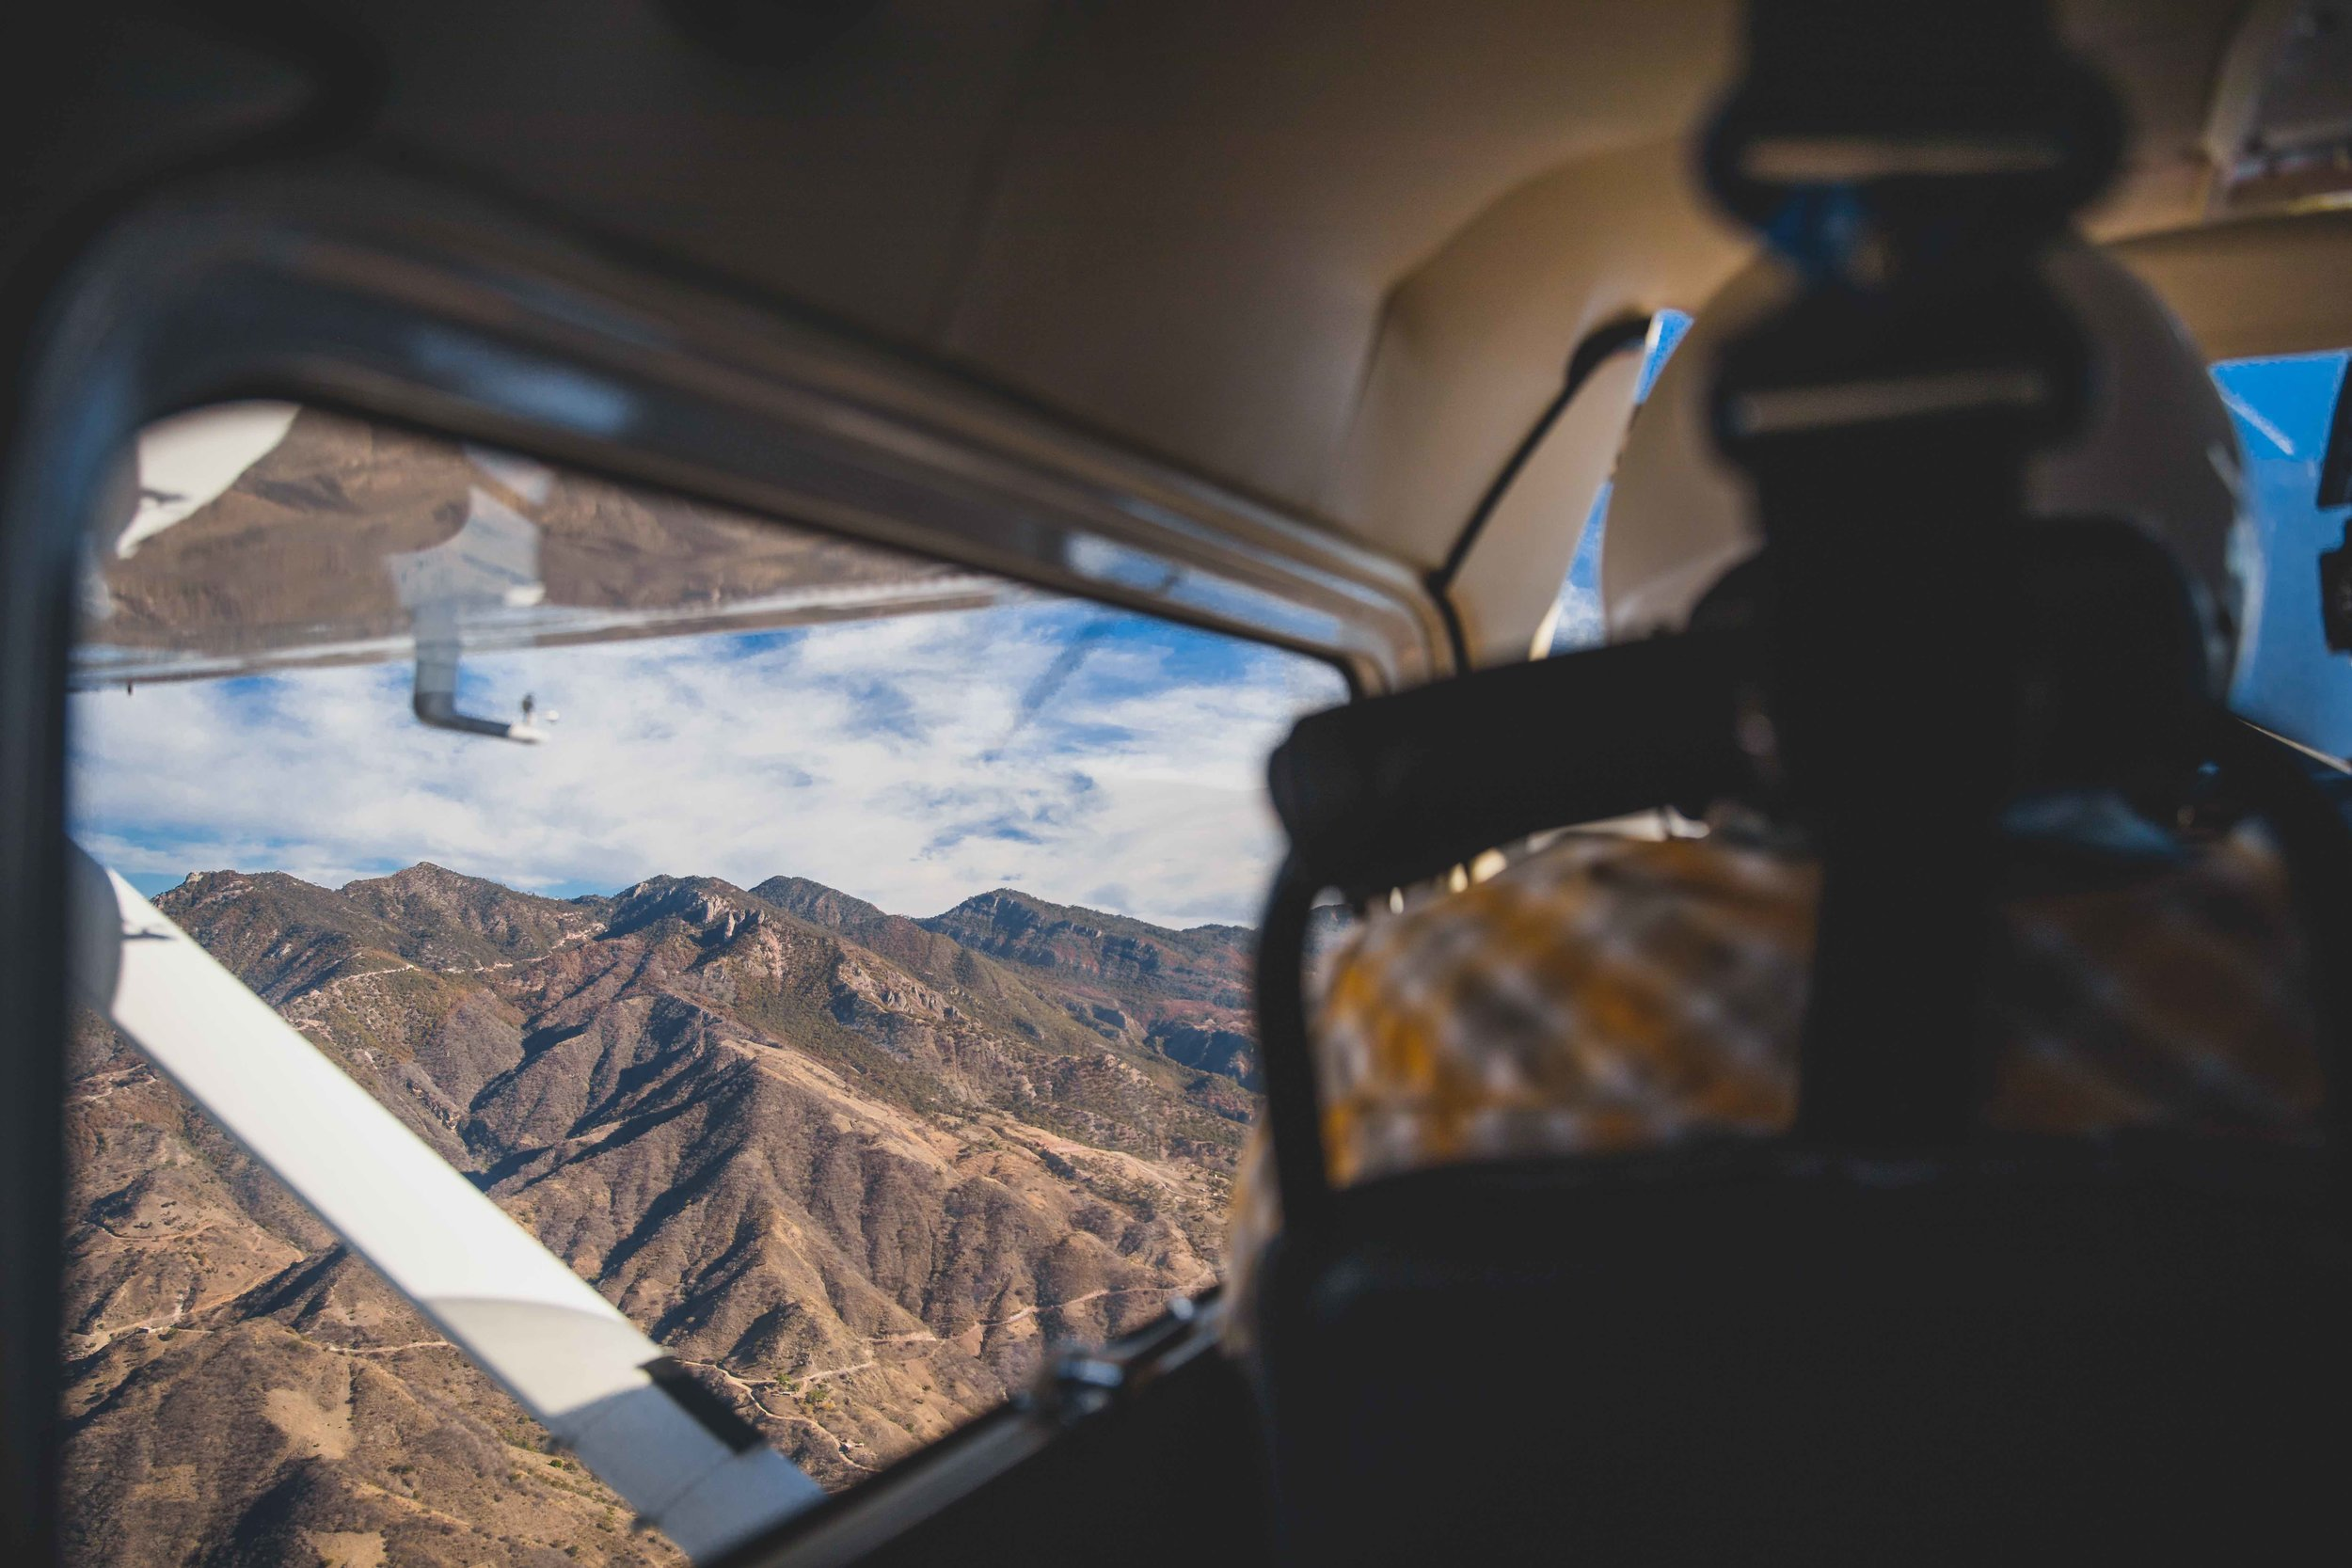 why fly? - A 24-minute flight can save up to 8-12 hours of travel by car, foot or boat. This can be life saving in critical medical evacuations.